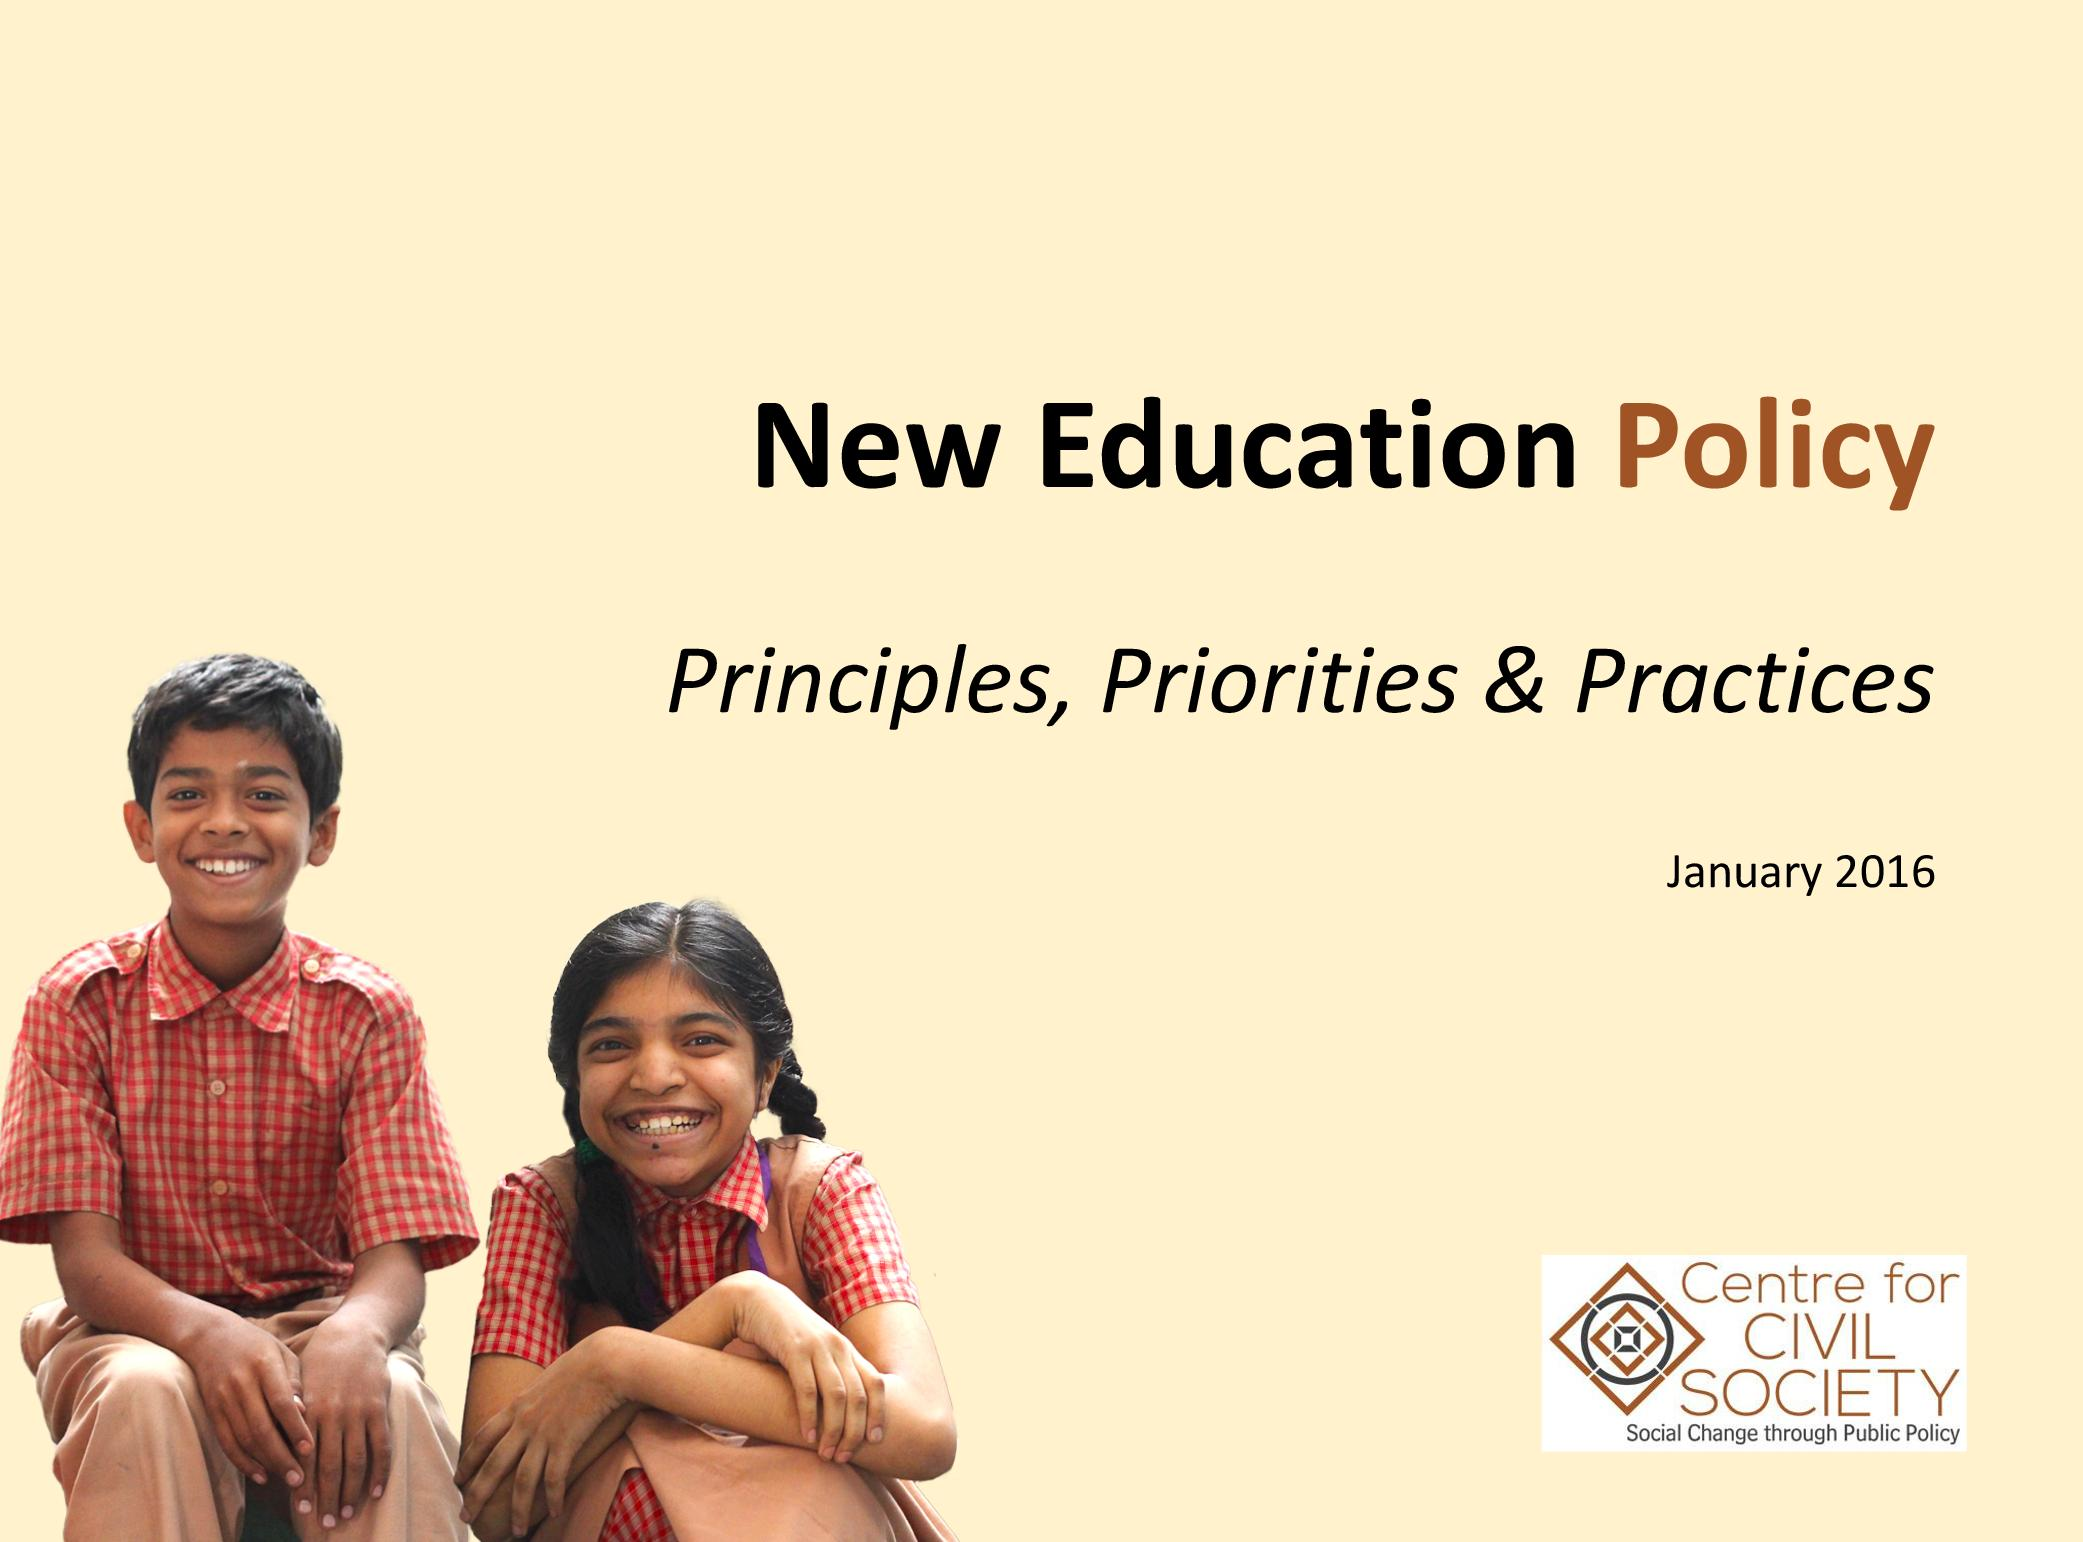 New Education Policy: Principles, Priorities & Practices | Brief by CCS